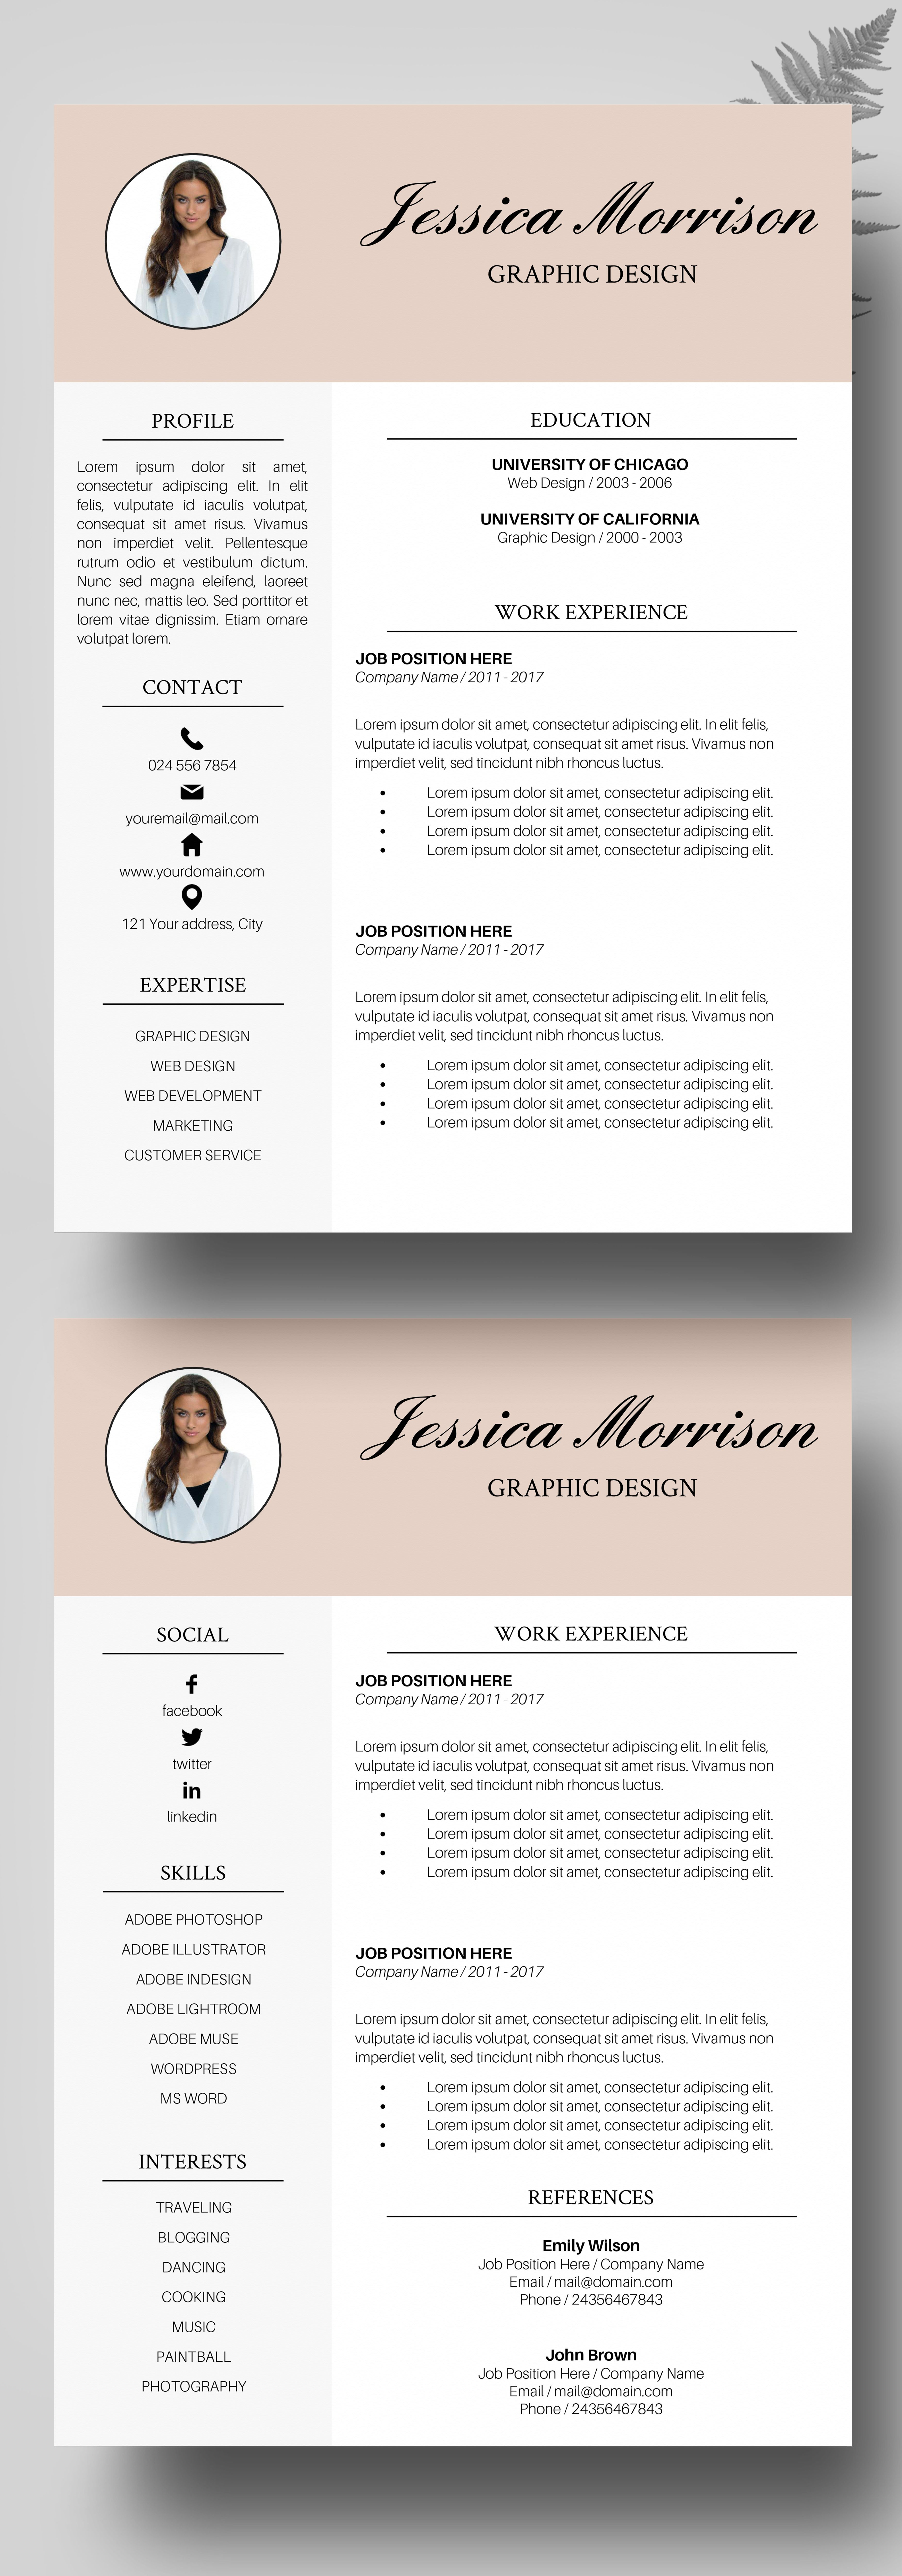 Photo Resume Template, Resume Instant Download, CV